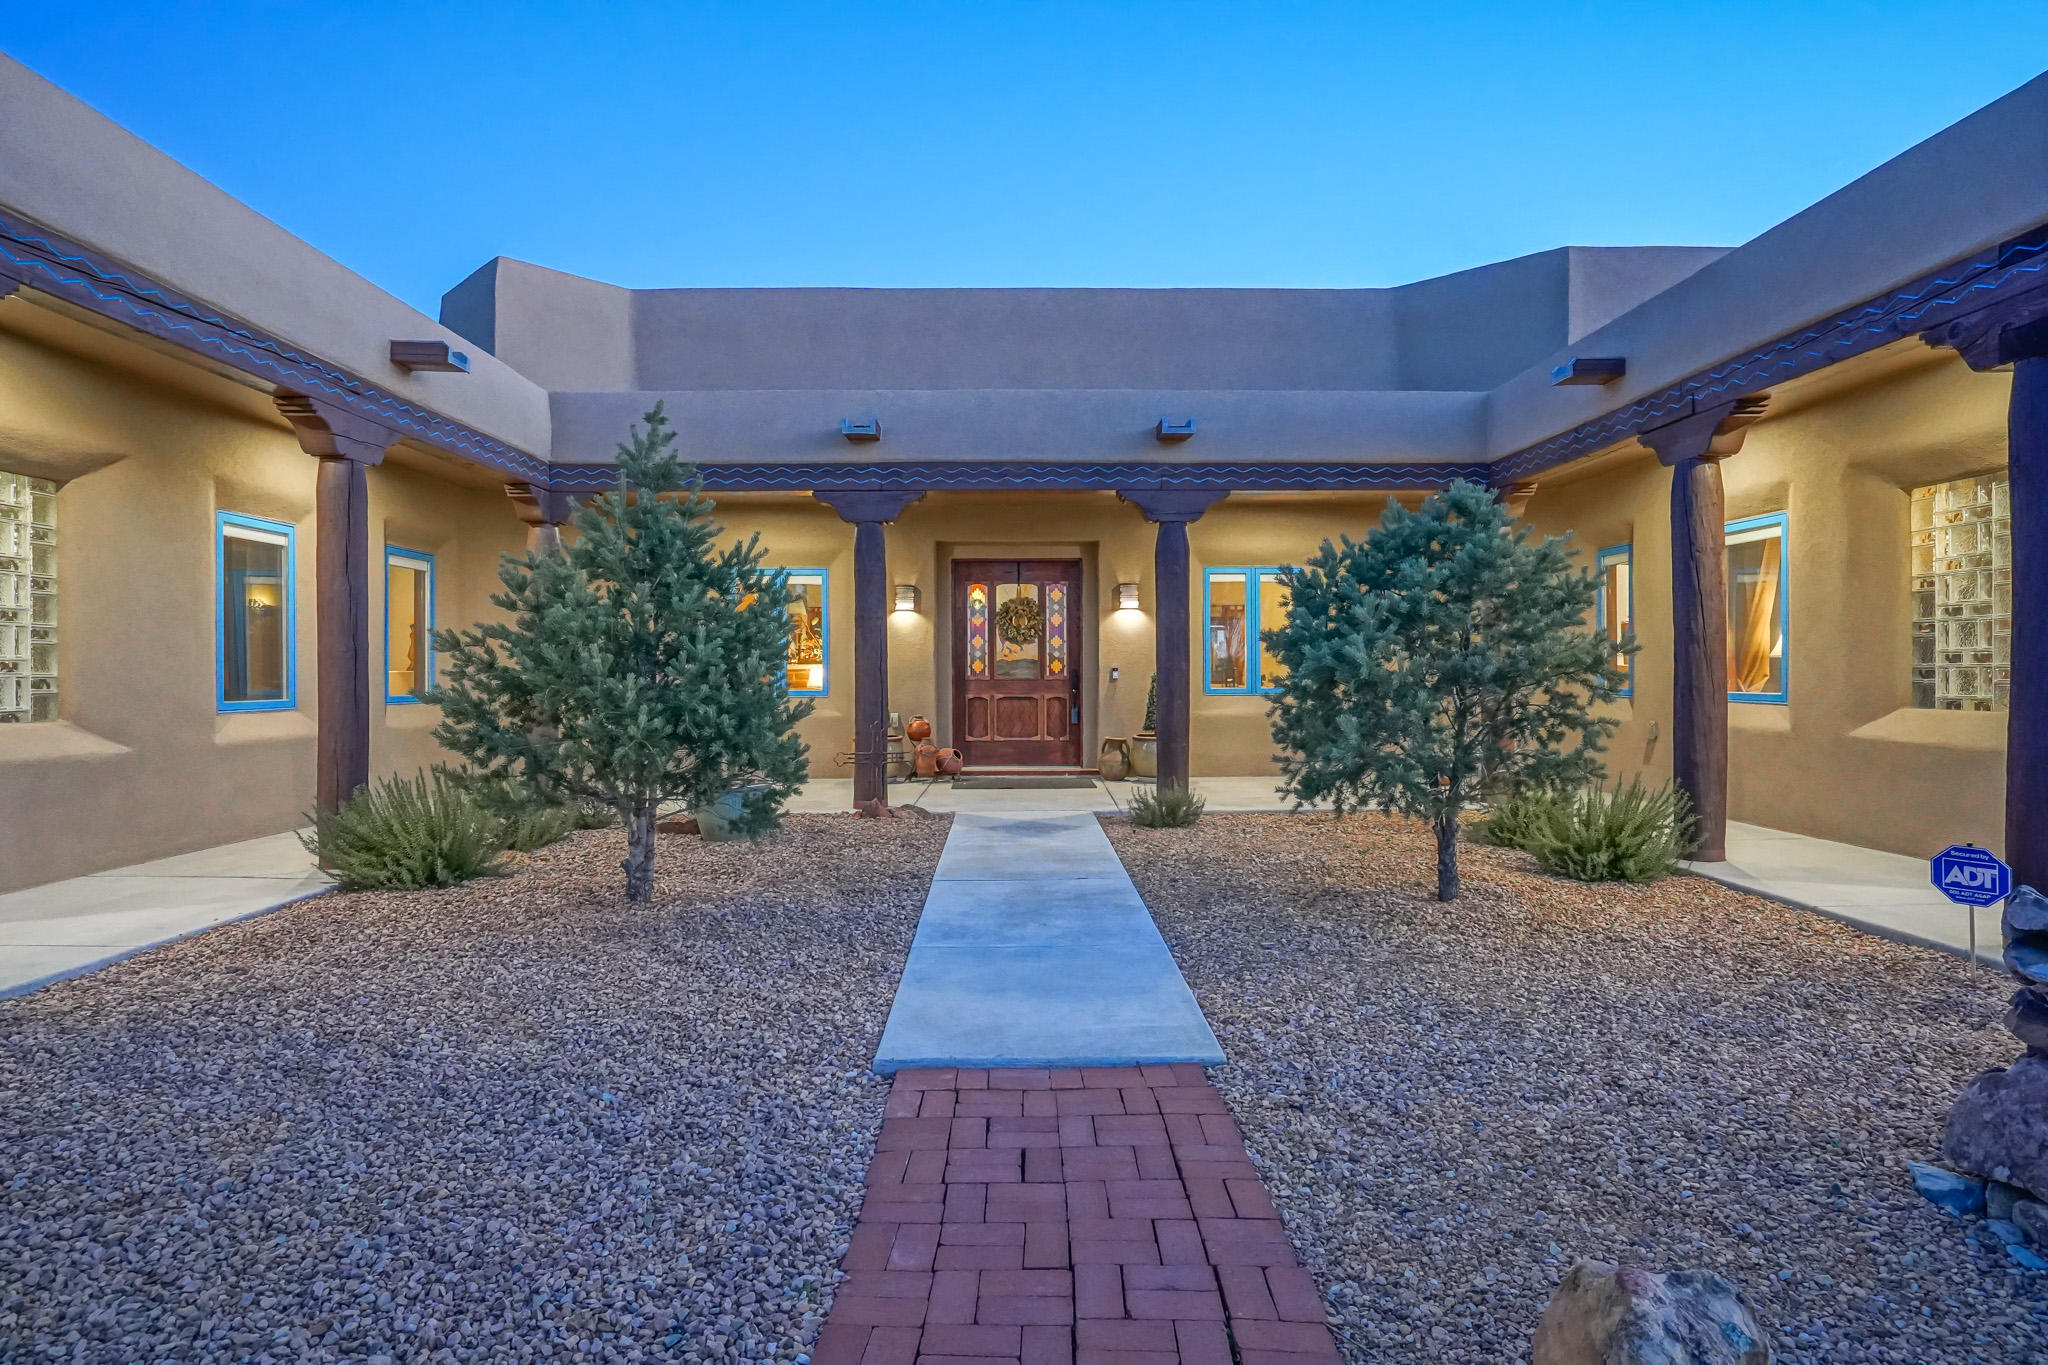 Palatial Santa Fe meets Craftsman Style Hacienda on .89 acre; luxurious mecca for large indoor & outdoor gatherings, warm brick radiant heated floors, 4 Kiva fireplaces, 5 bedrooms, 3 car garage, Pella wood windows, artisan woodwork, hand carved doors & carved posts, furniture quality handcrafted soft close dove-tailed cabinetry, custom wood trim w/ silver finials, adobe accents. Owners Wing, 2 way fireplace w/ attached den/office/exercise, beamed ceiling, double sinks, jetted tub, travertine shower, large walk-in closet. Chef's entertaining kitchen, 4 Wolf ovens, 4 burners, griddle & grill, Sub-Zero frig/freezer, walk-in butler's pantry, full outdoor kitchen and outdoor playground, cable/ethernet in every room, IT room command central. Close to everything! North Abq Acres at it's finest!